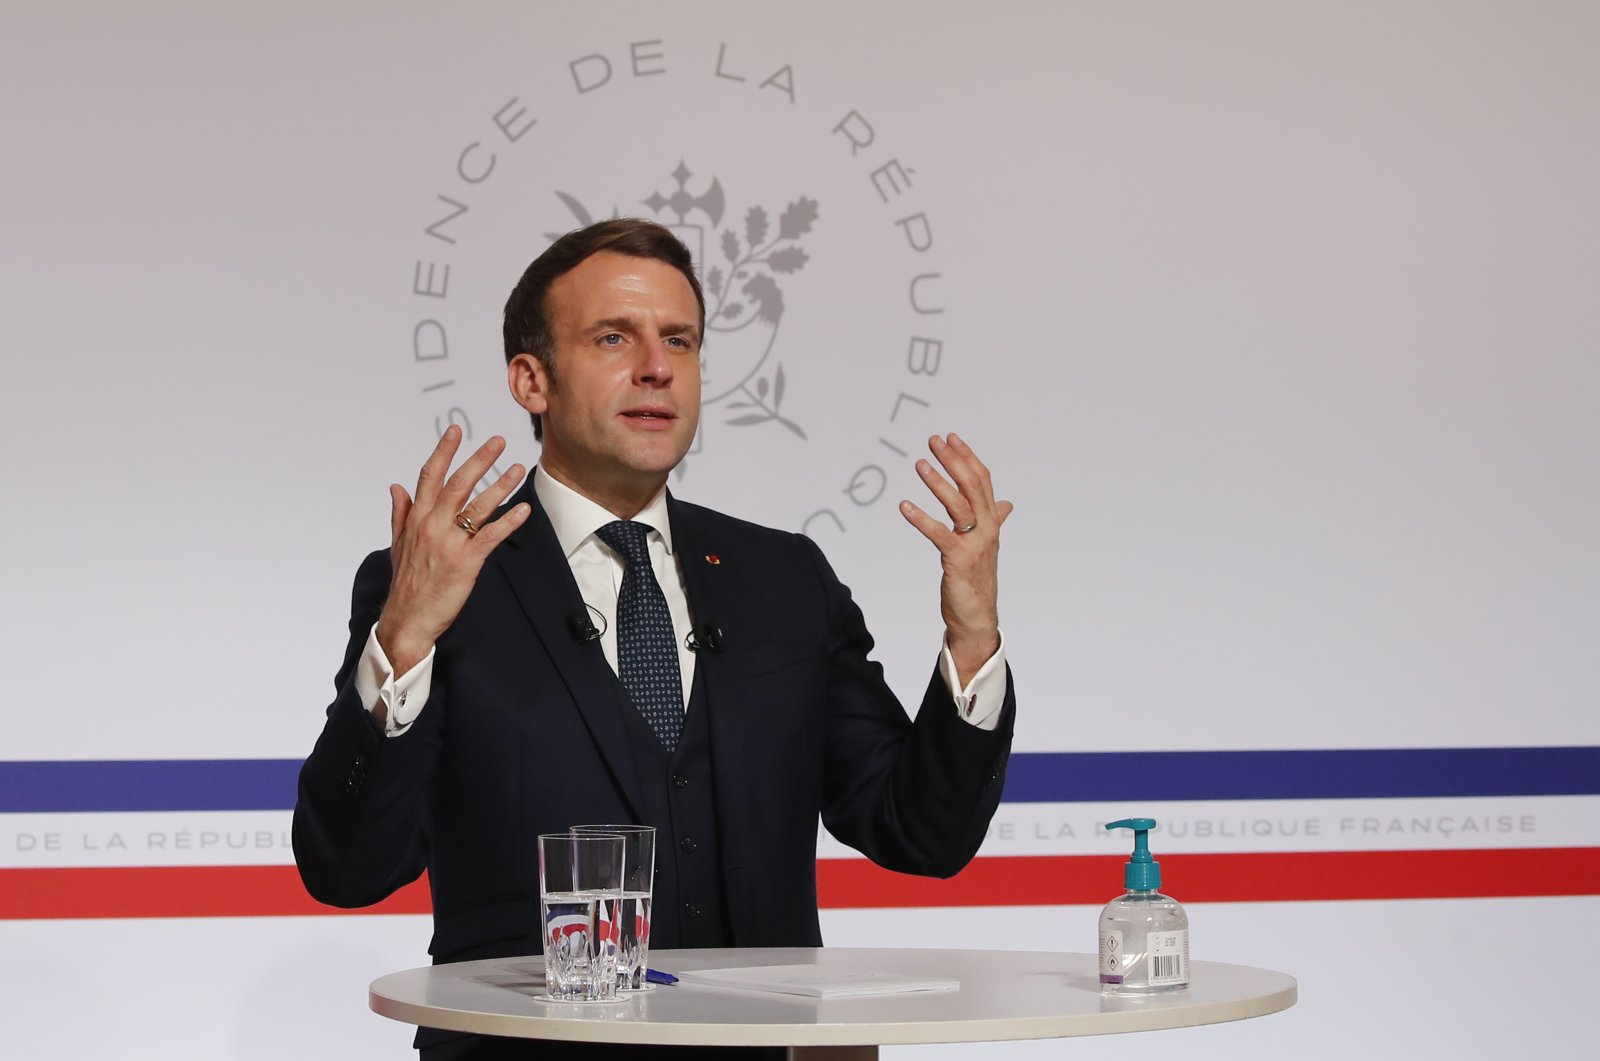 French President Emmanuel Macron attends a videoconference at the Elysee Palace in Paris, France, Jan. 26, 2021. (AP Photo)